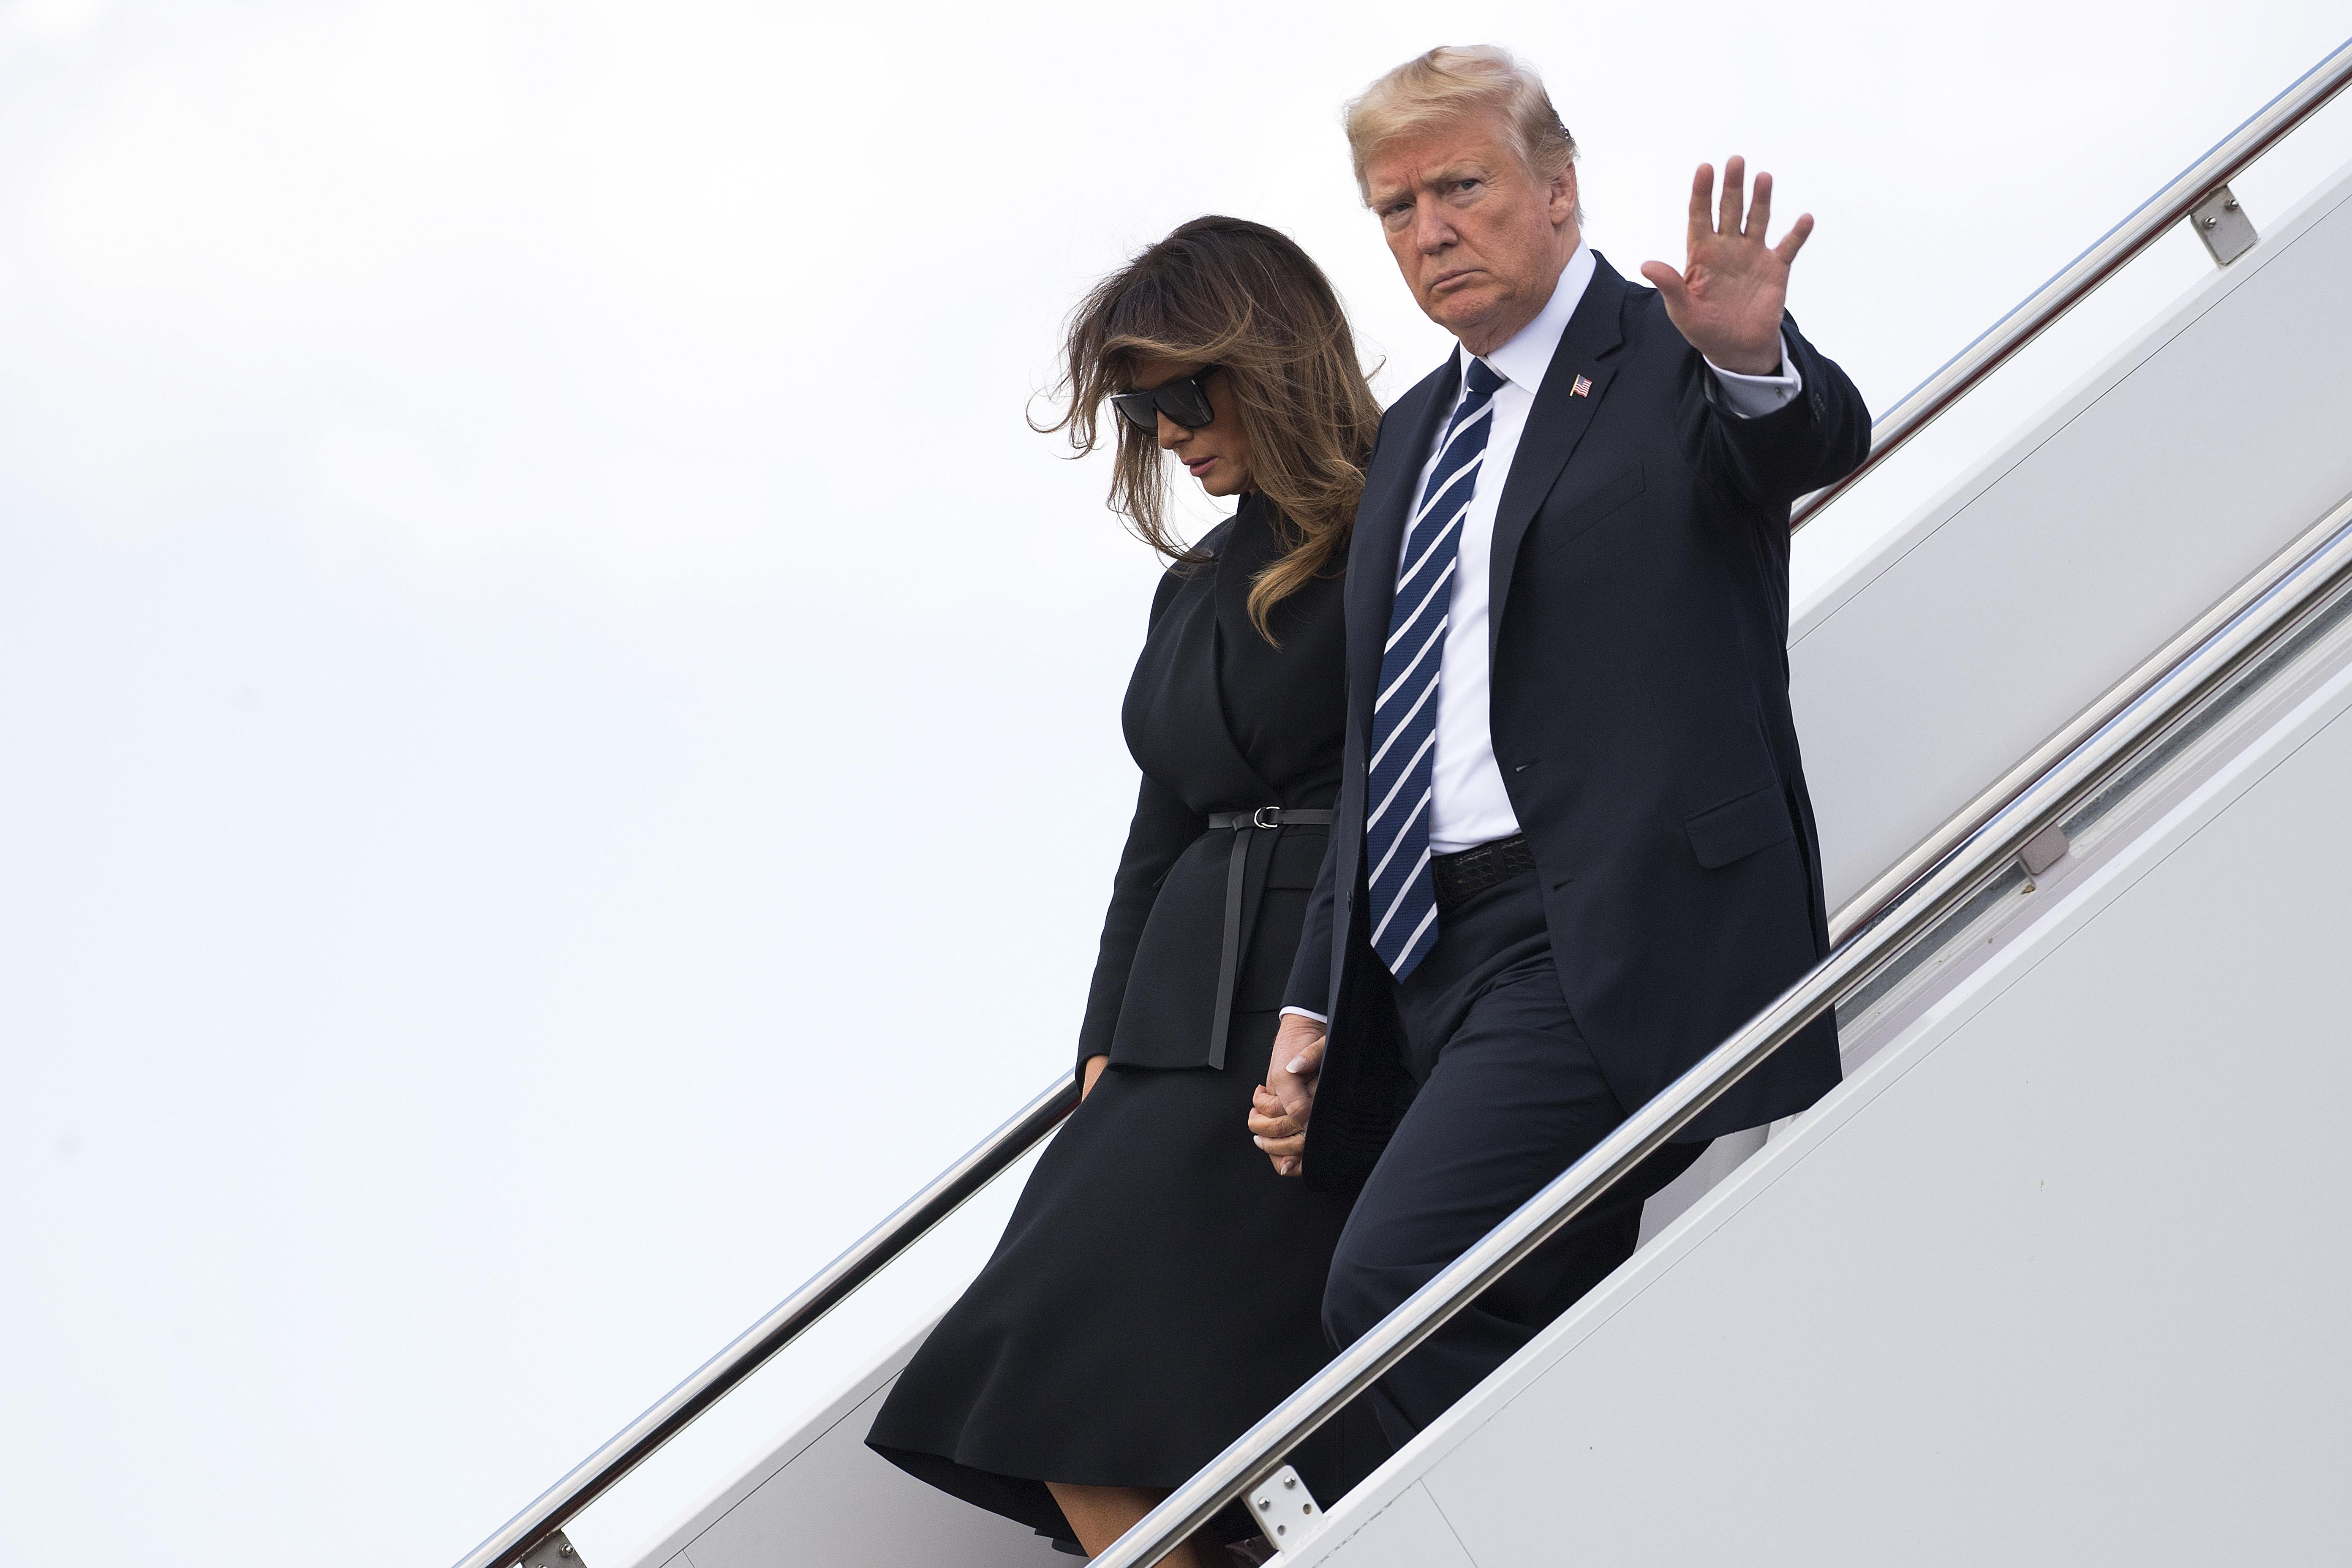 President Donald Trump and First Lady Melania Trump walk off Air Force One as they arrive in West Palm Beach, Florida, on March 2, 2018. / AFP PHOTO / JIM WATSON